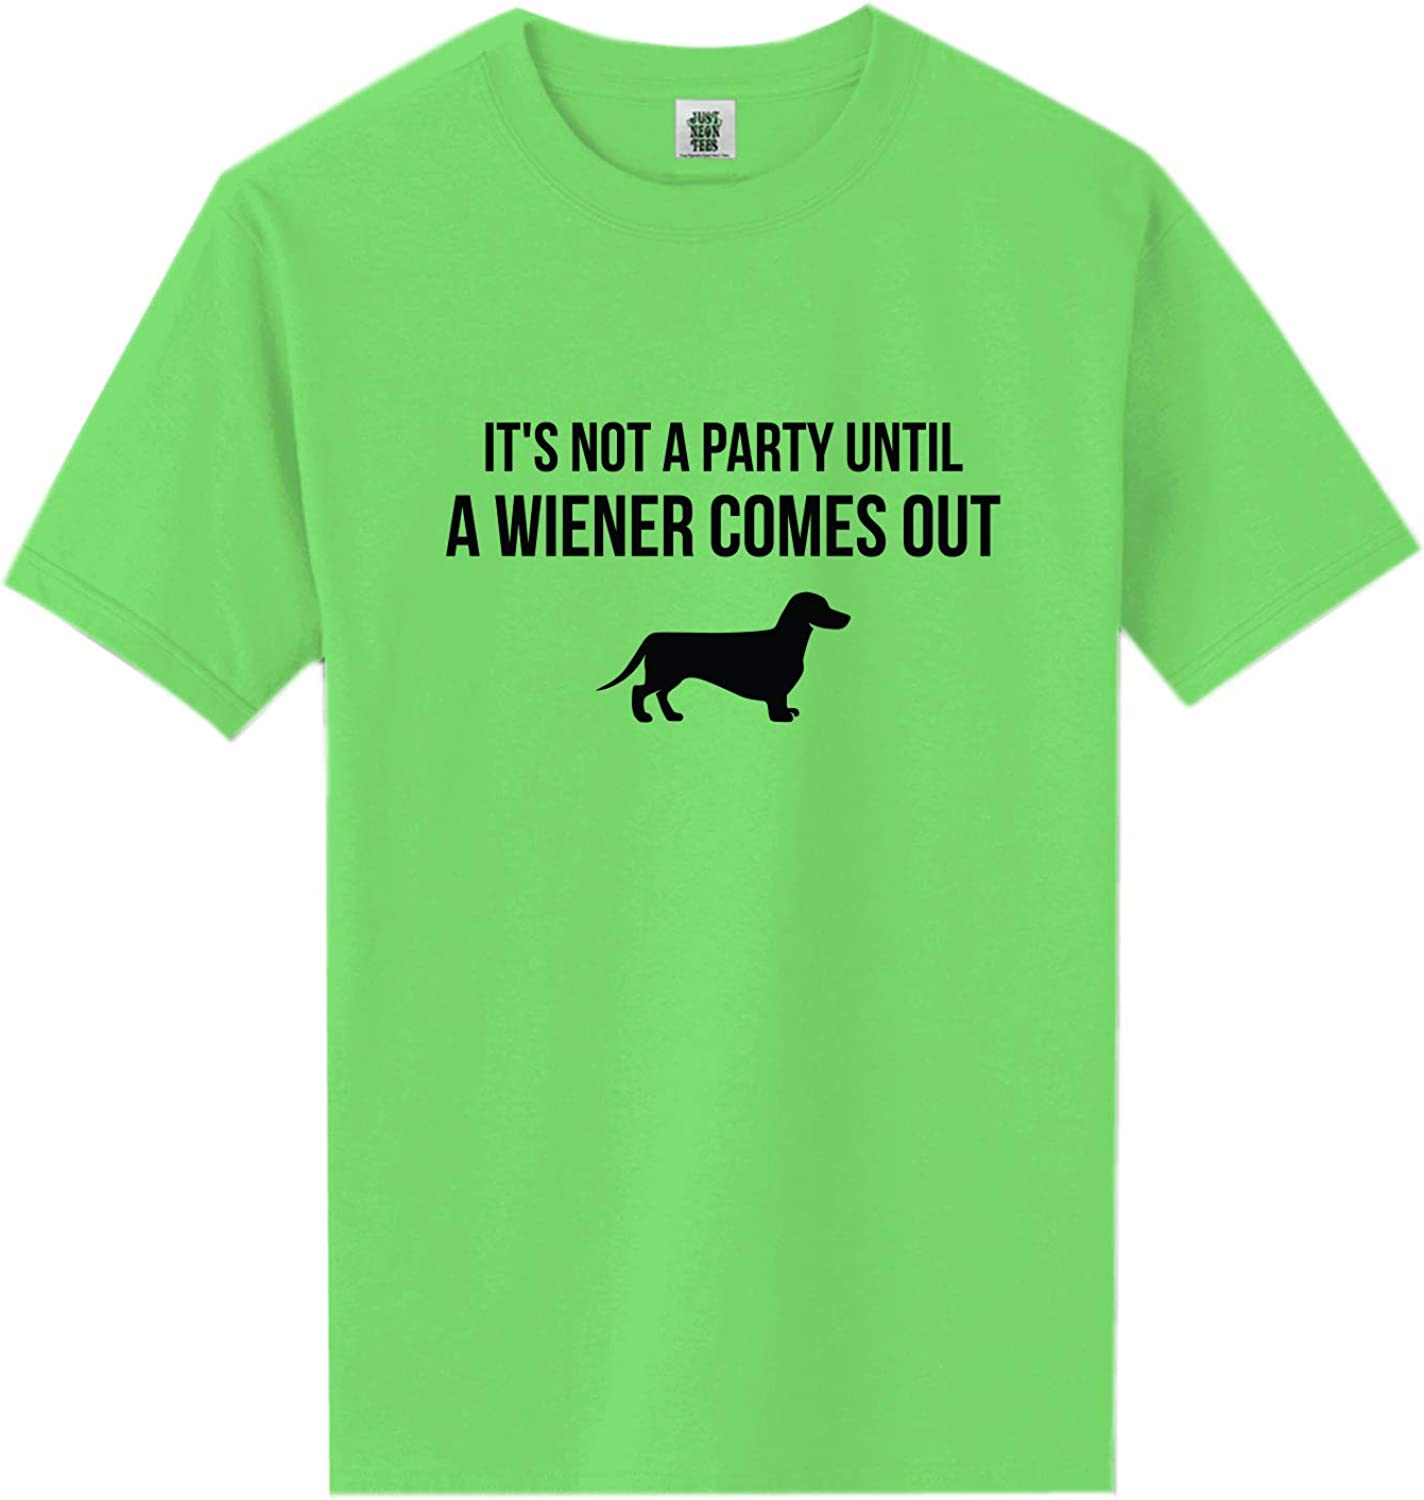 It's Not A Party Until A Wiener Neon Green Short Sleeve T-Shirt - XX-Large